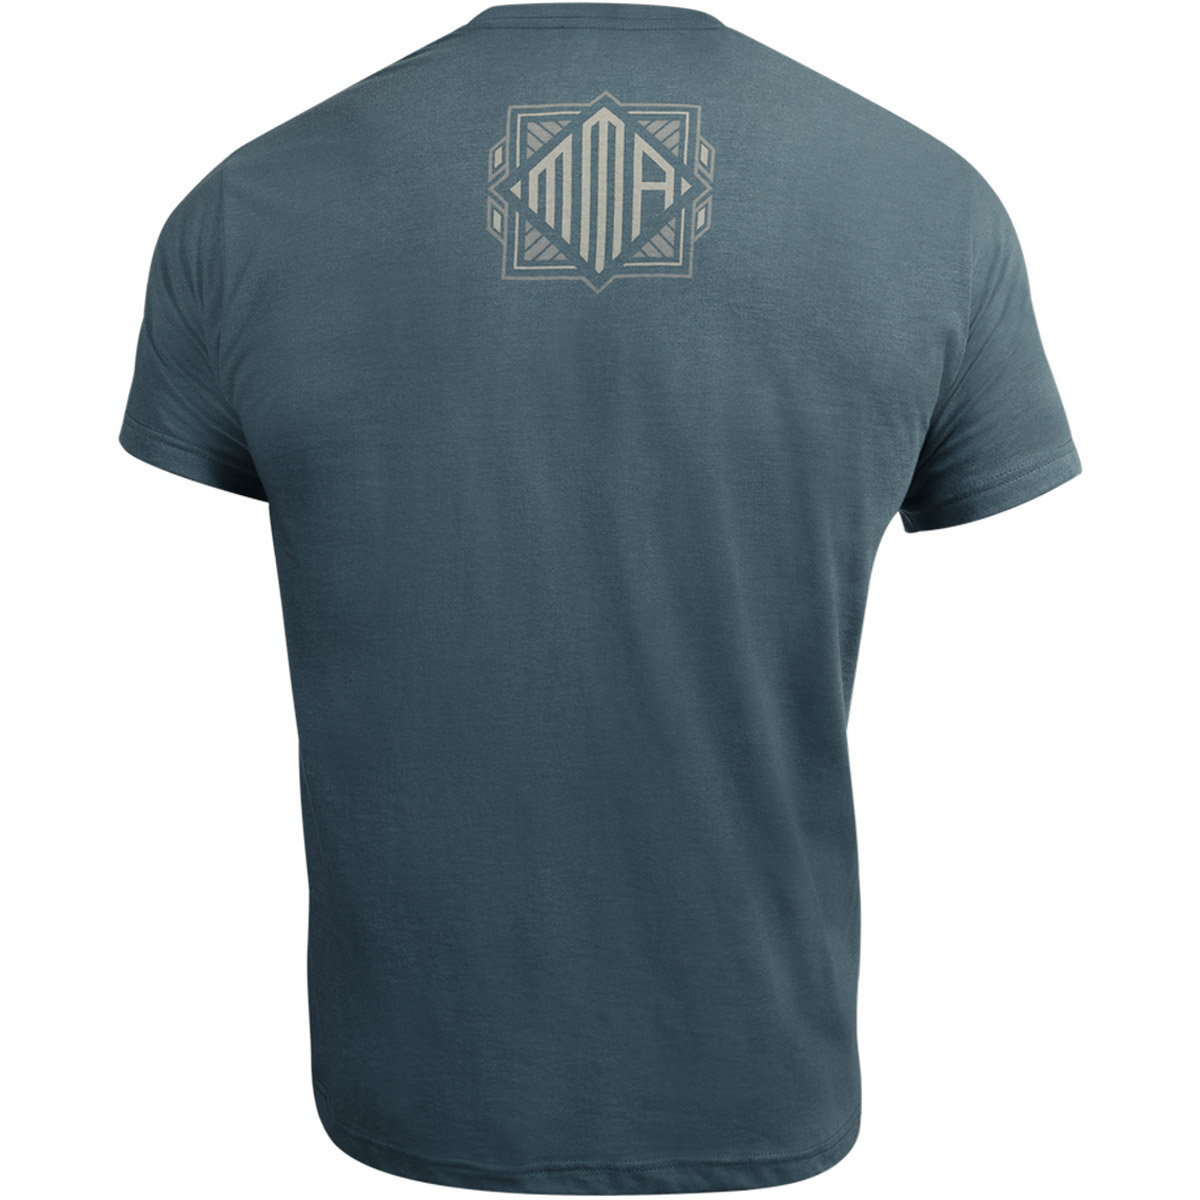 warrior 12 warrior shirts